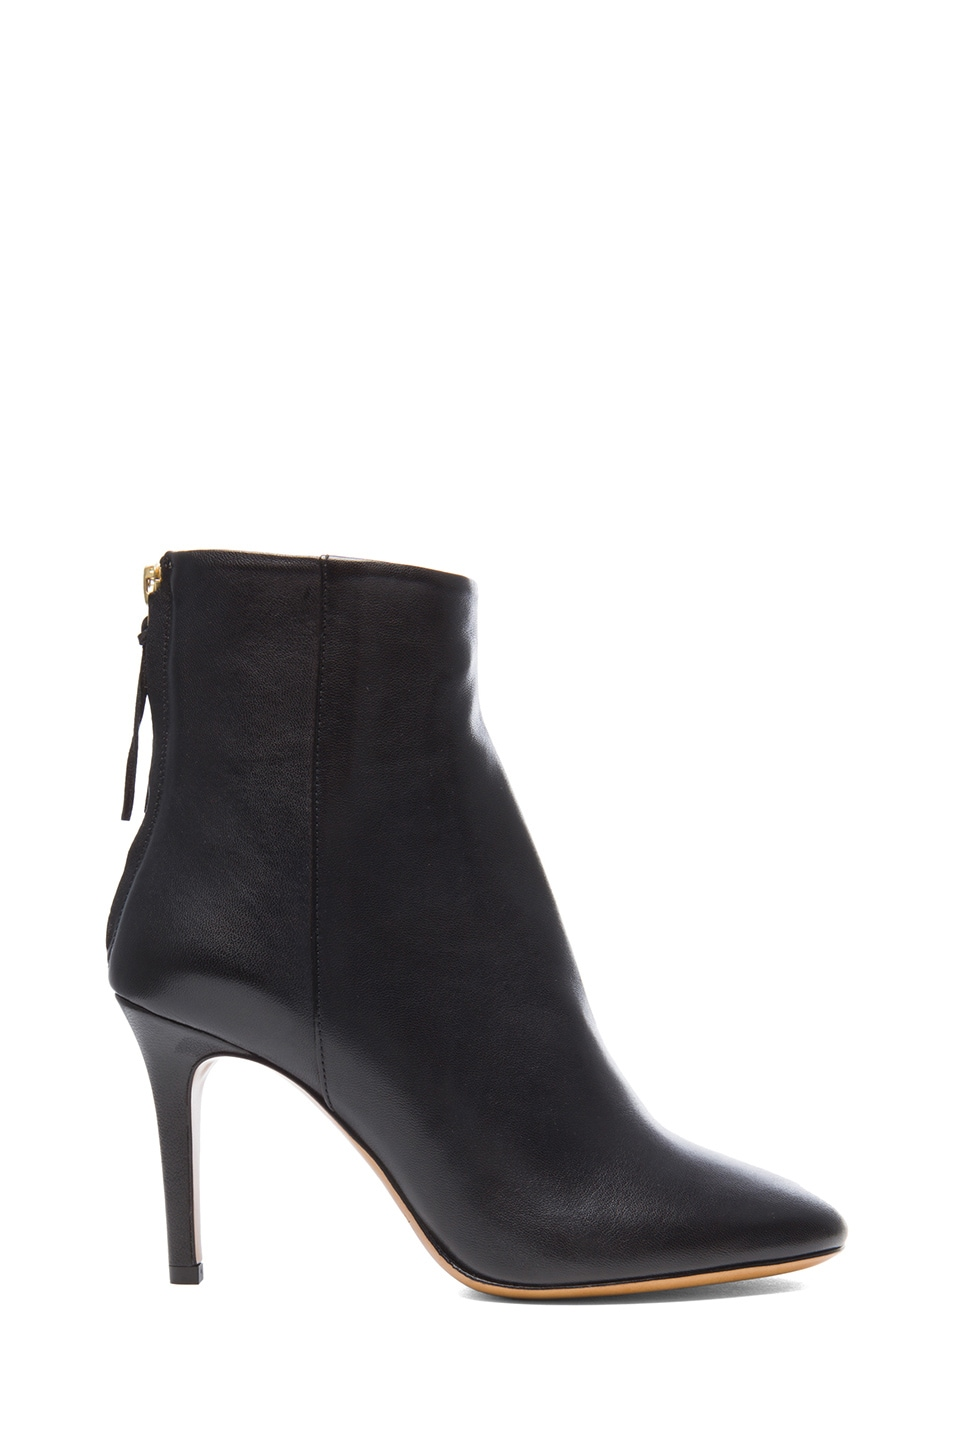 Image 1 of Isabel Marant Aliah Lambskin Leather Booties in Black